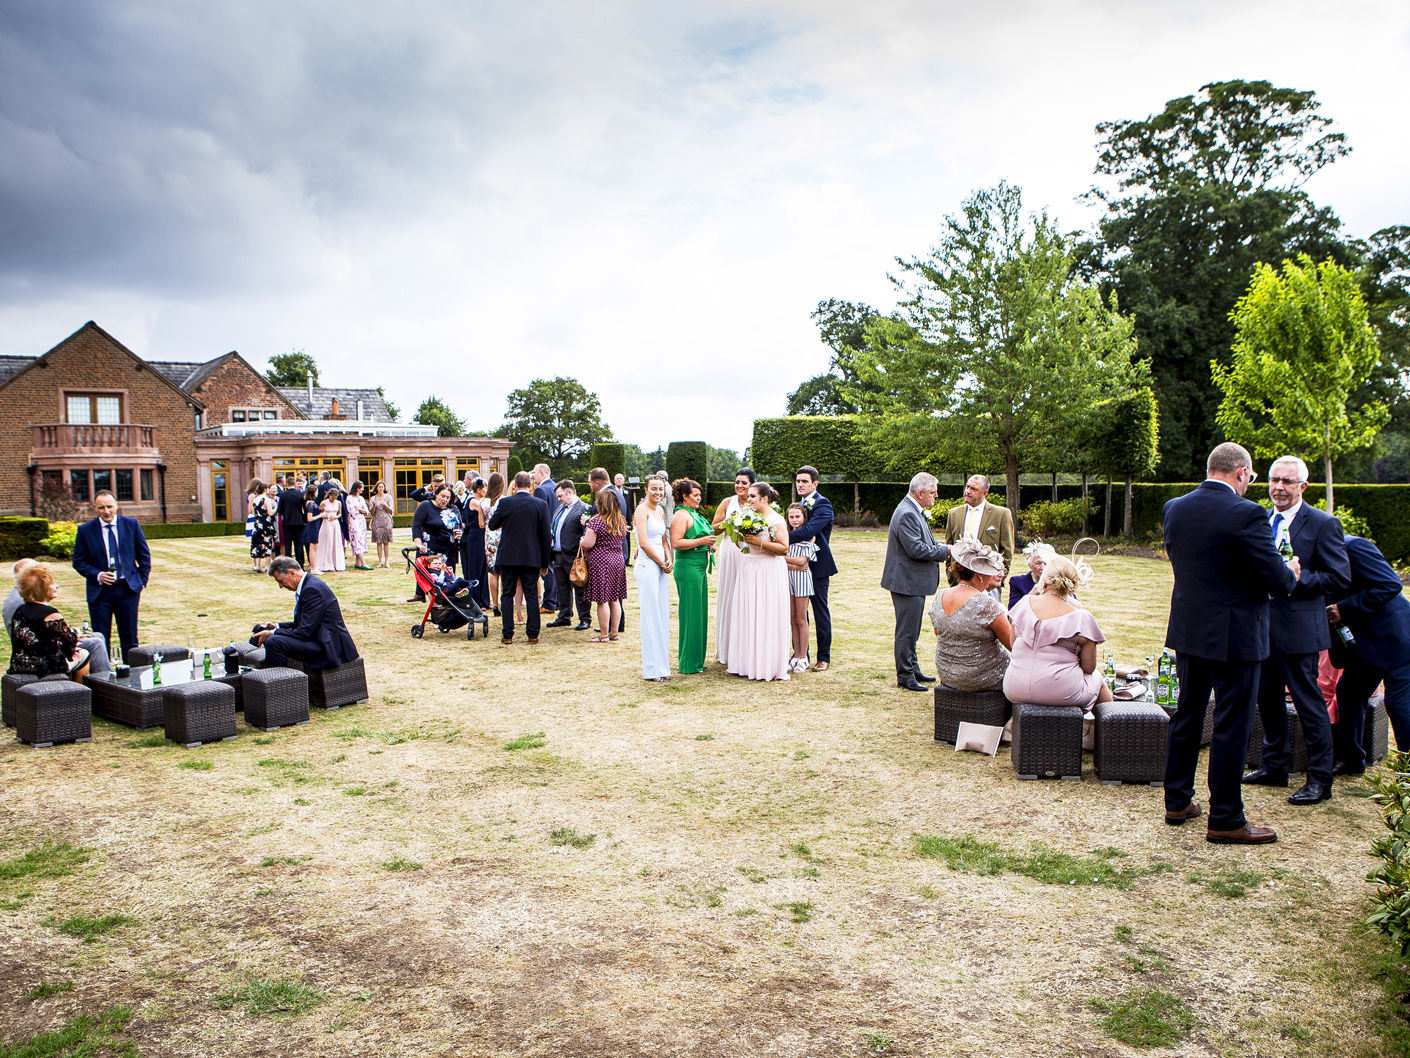 photography-of-the-wedding-party-relaxing-in-the-grounds-of-merrydale-manor-knutsford-cheshire